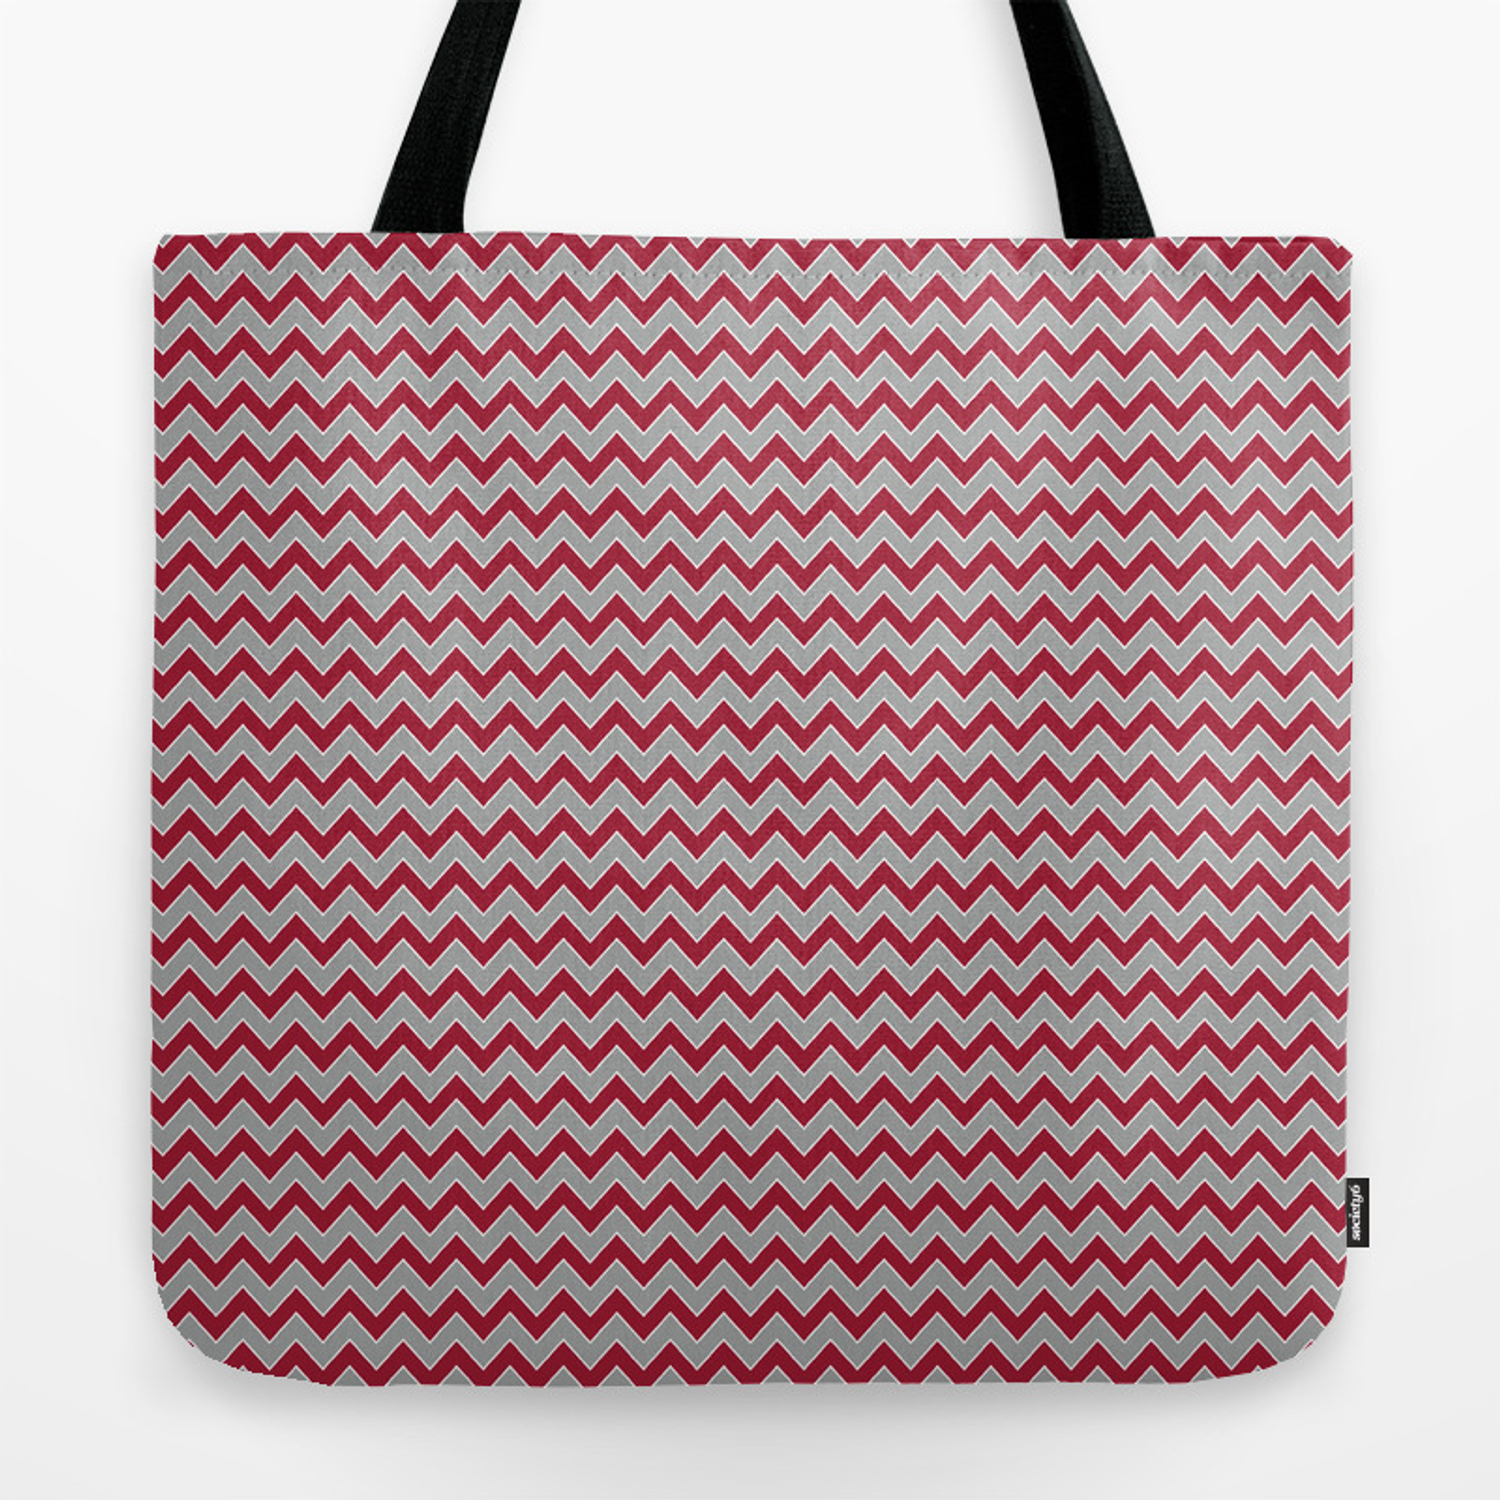 University of Alabama colors chevron zig zag minimal pattern college football sports Tote Bag